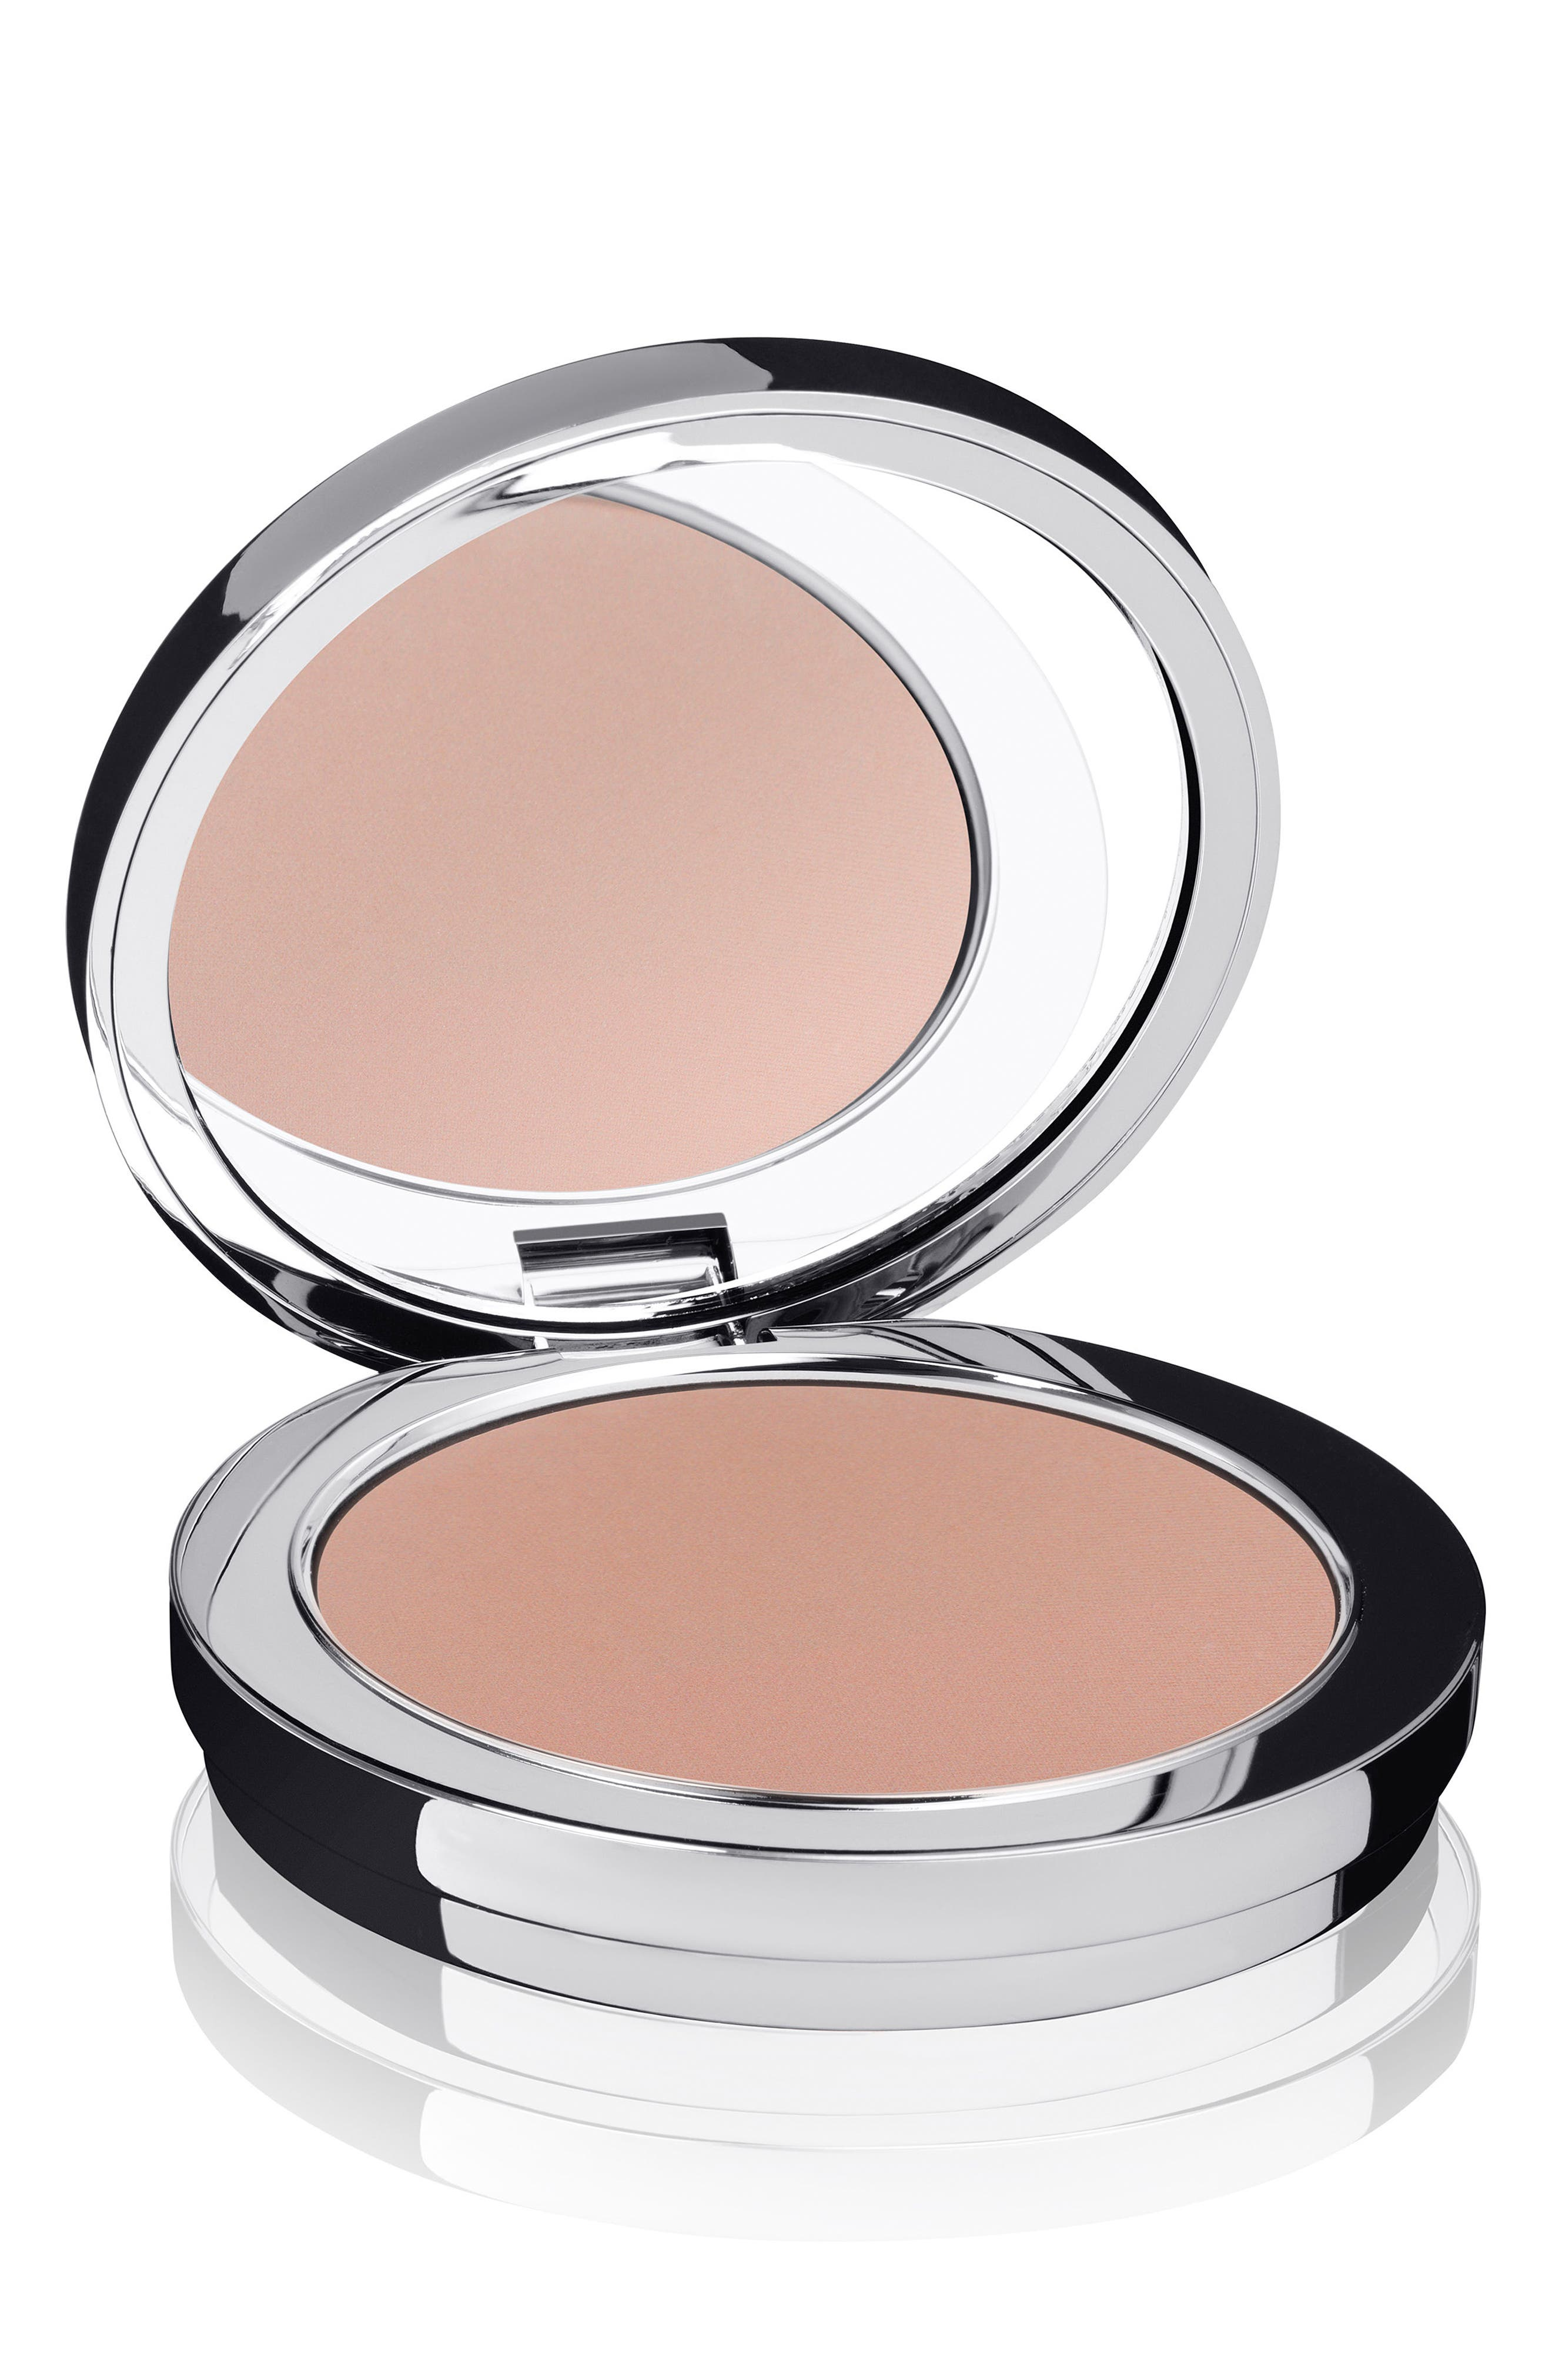 SPACE.NK.apothecary Rodial Instaglam™ Deluxe Bronzing Powder Compact